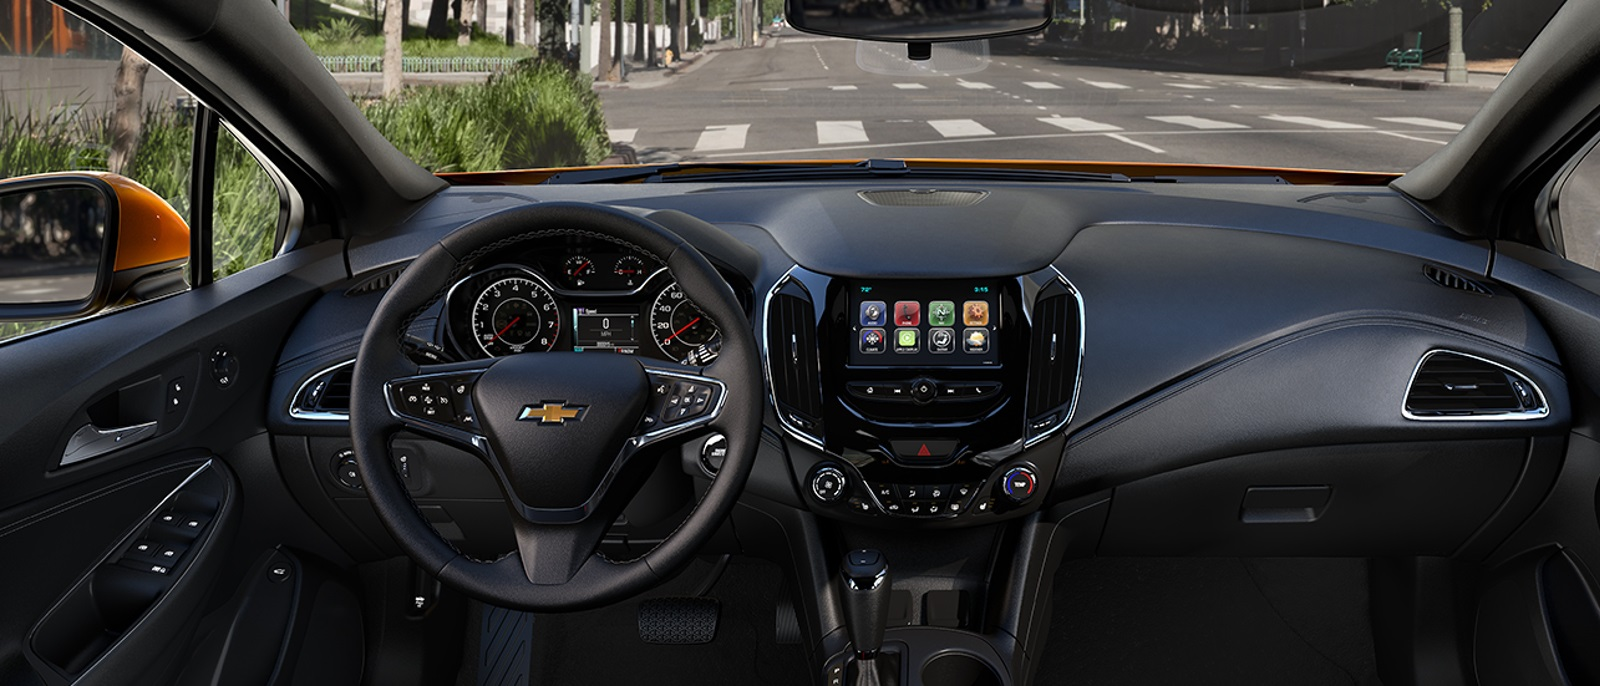 Cruze chevy cruze 2014 interior : 2017 Chevy Cruze Promises to Take Popular Line Further